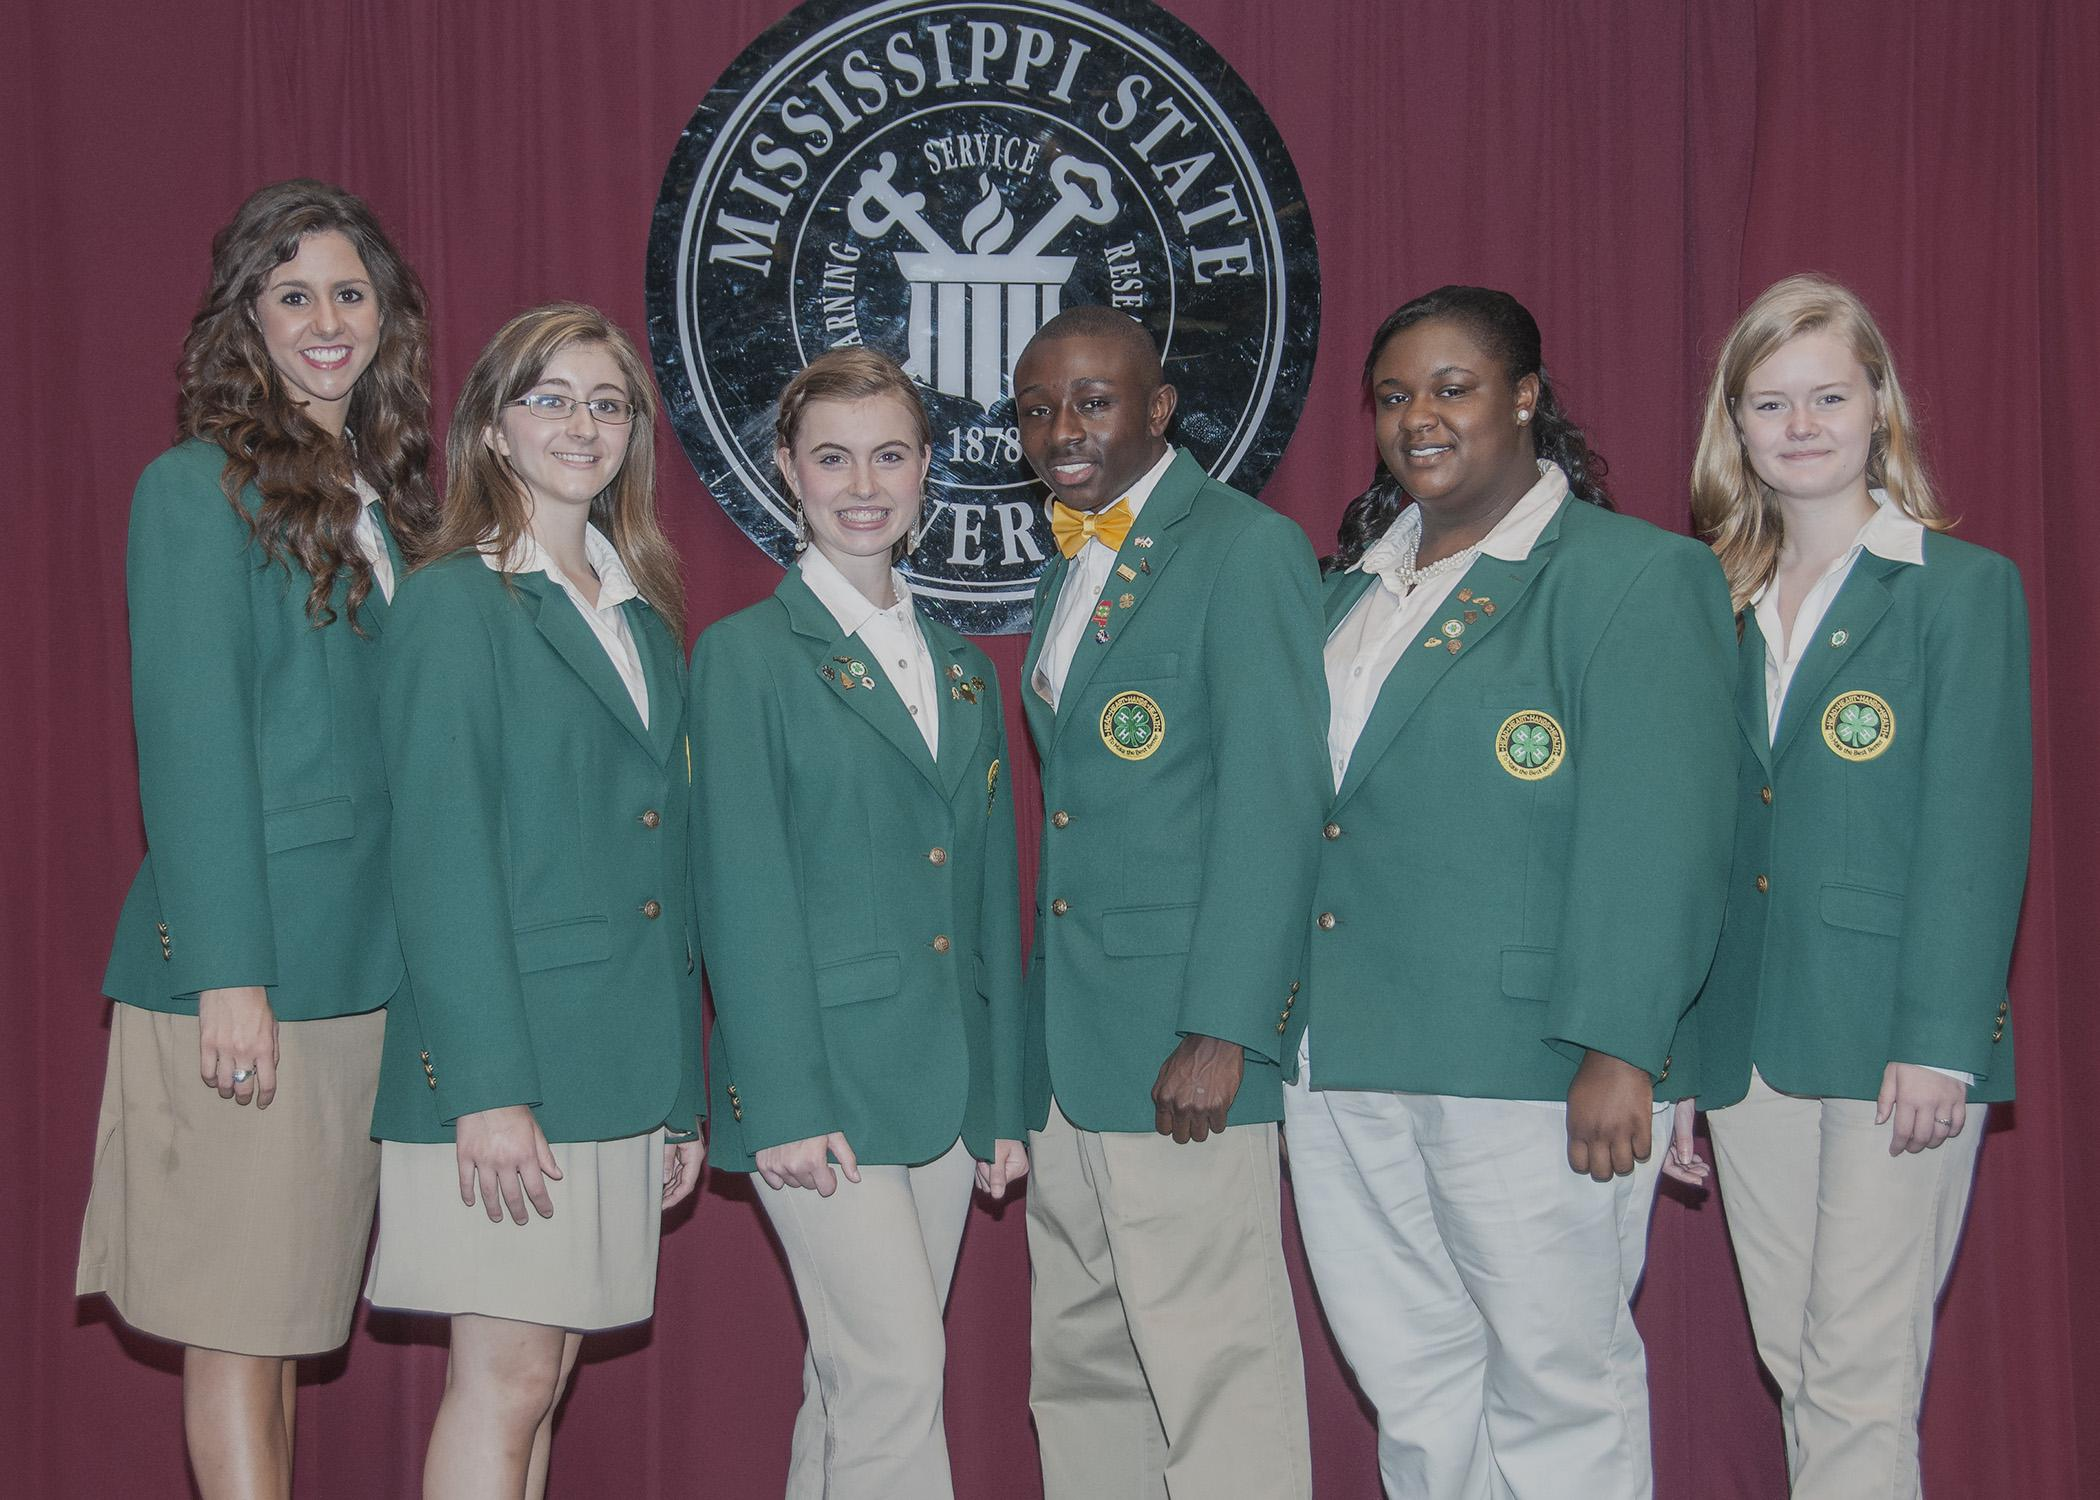 Six 4-H leaders will represent the state at the 2014 National 4-H Conference in Washington, D.C.. From left are: Belle Failla of Hancock County; Marisa Laudadio of Alcorn County; Mary Kate Gaines of Tate County; Mitchell Young of Oktibbeha County; Timera Rodgers of DeSoto County; and Elsa Schmitz of Pearl River County. (Photo by MSU Ag Communications/Scott Corey)